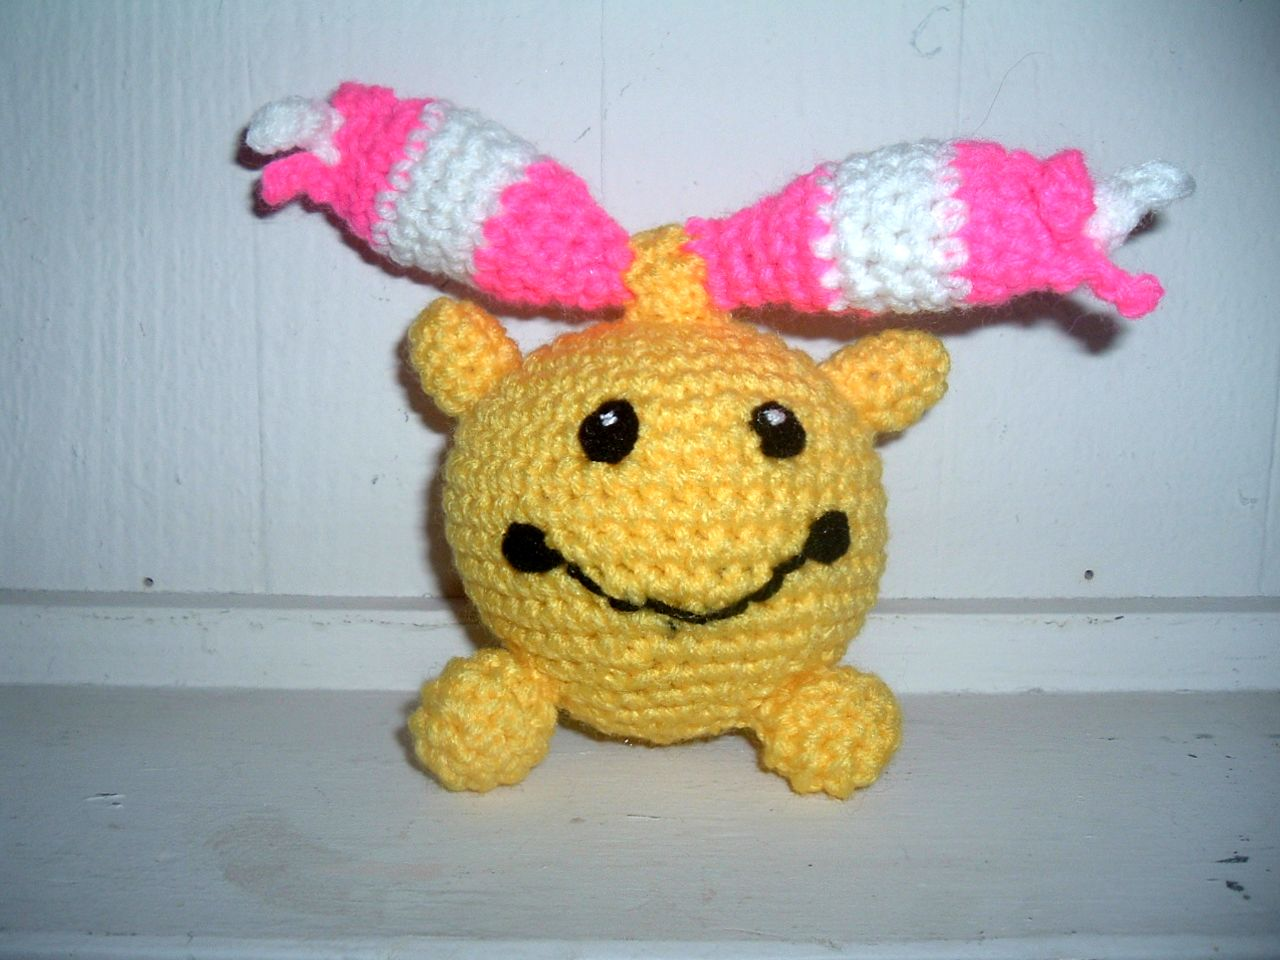 Crochet Patterns Pokemon : Mi Mundo Amiguru Miau: Pokemon crochet pattern